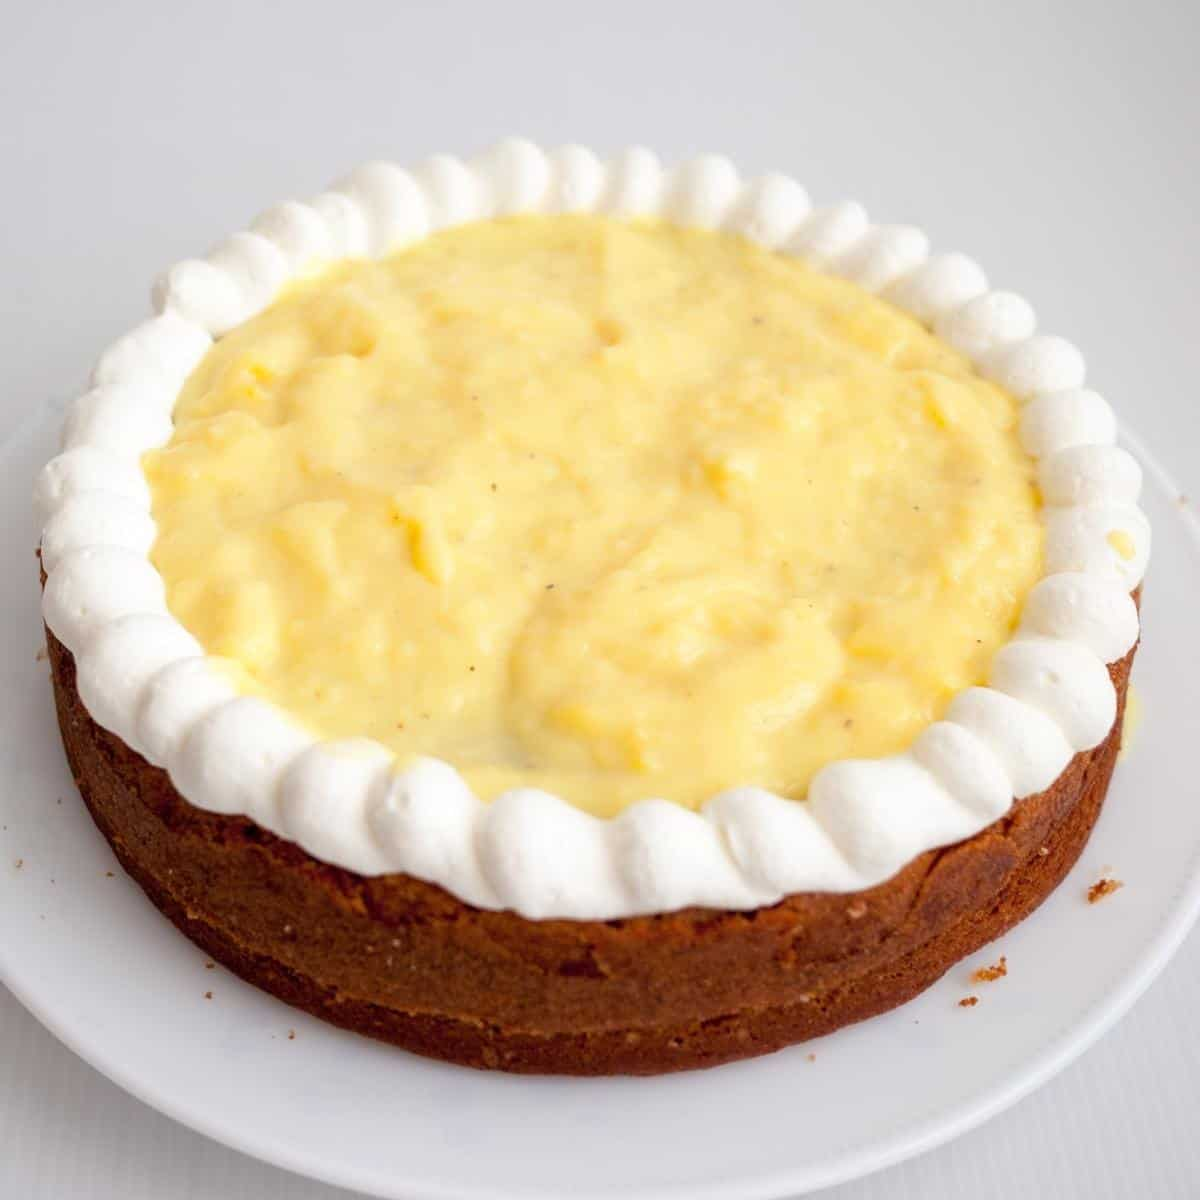 A vanilla layer cake filled with pastry cream filling.